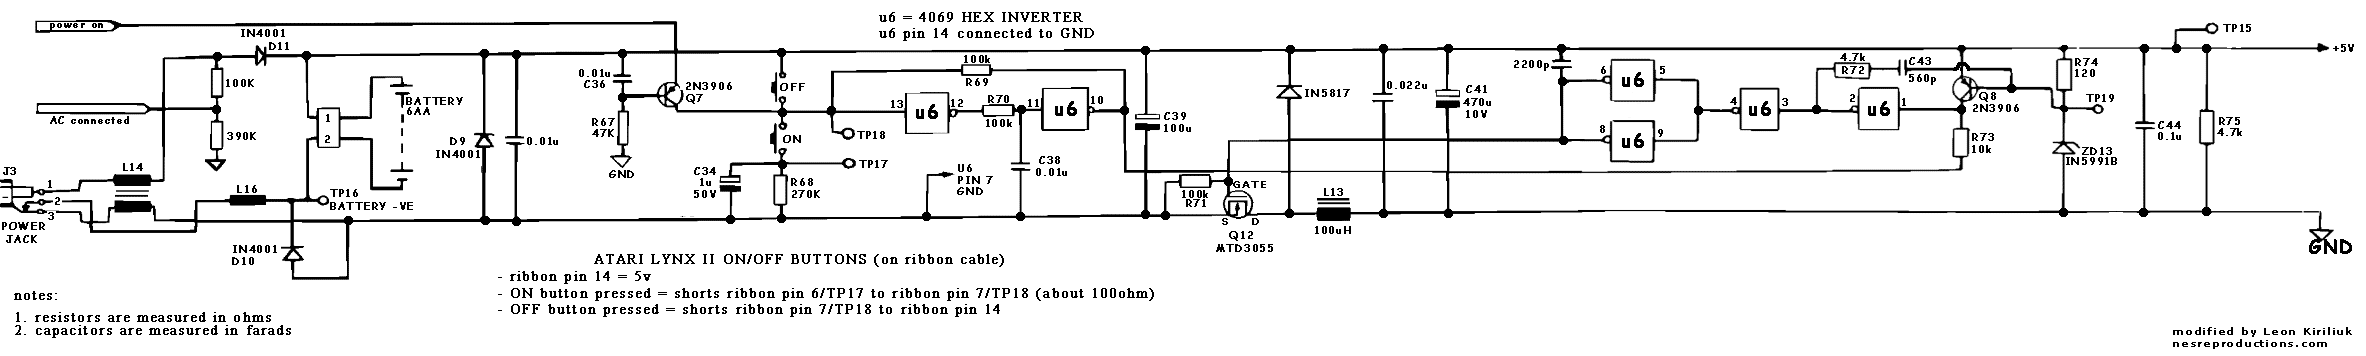 atari lynx ii schematics for power atari lynx atariage forums atari lynx 2 power schematic png